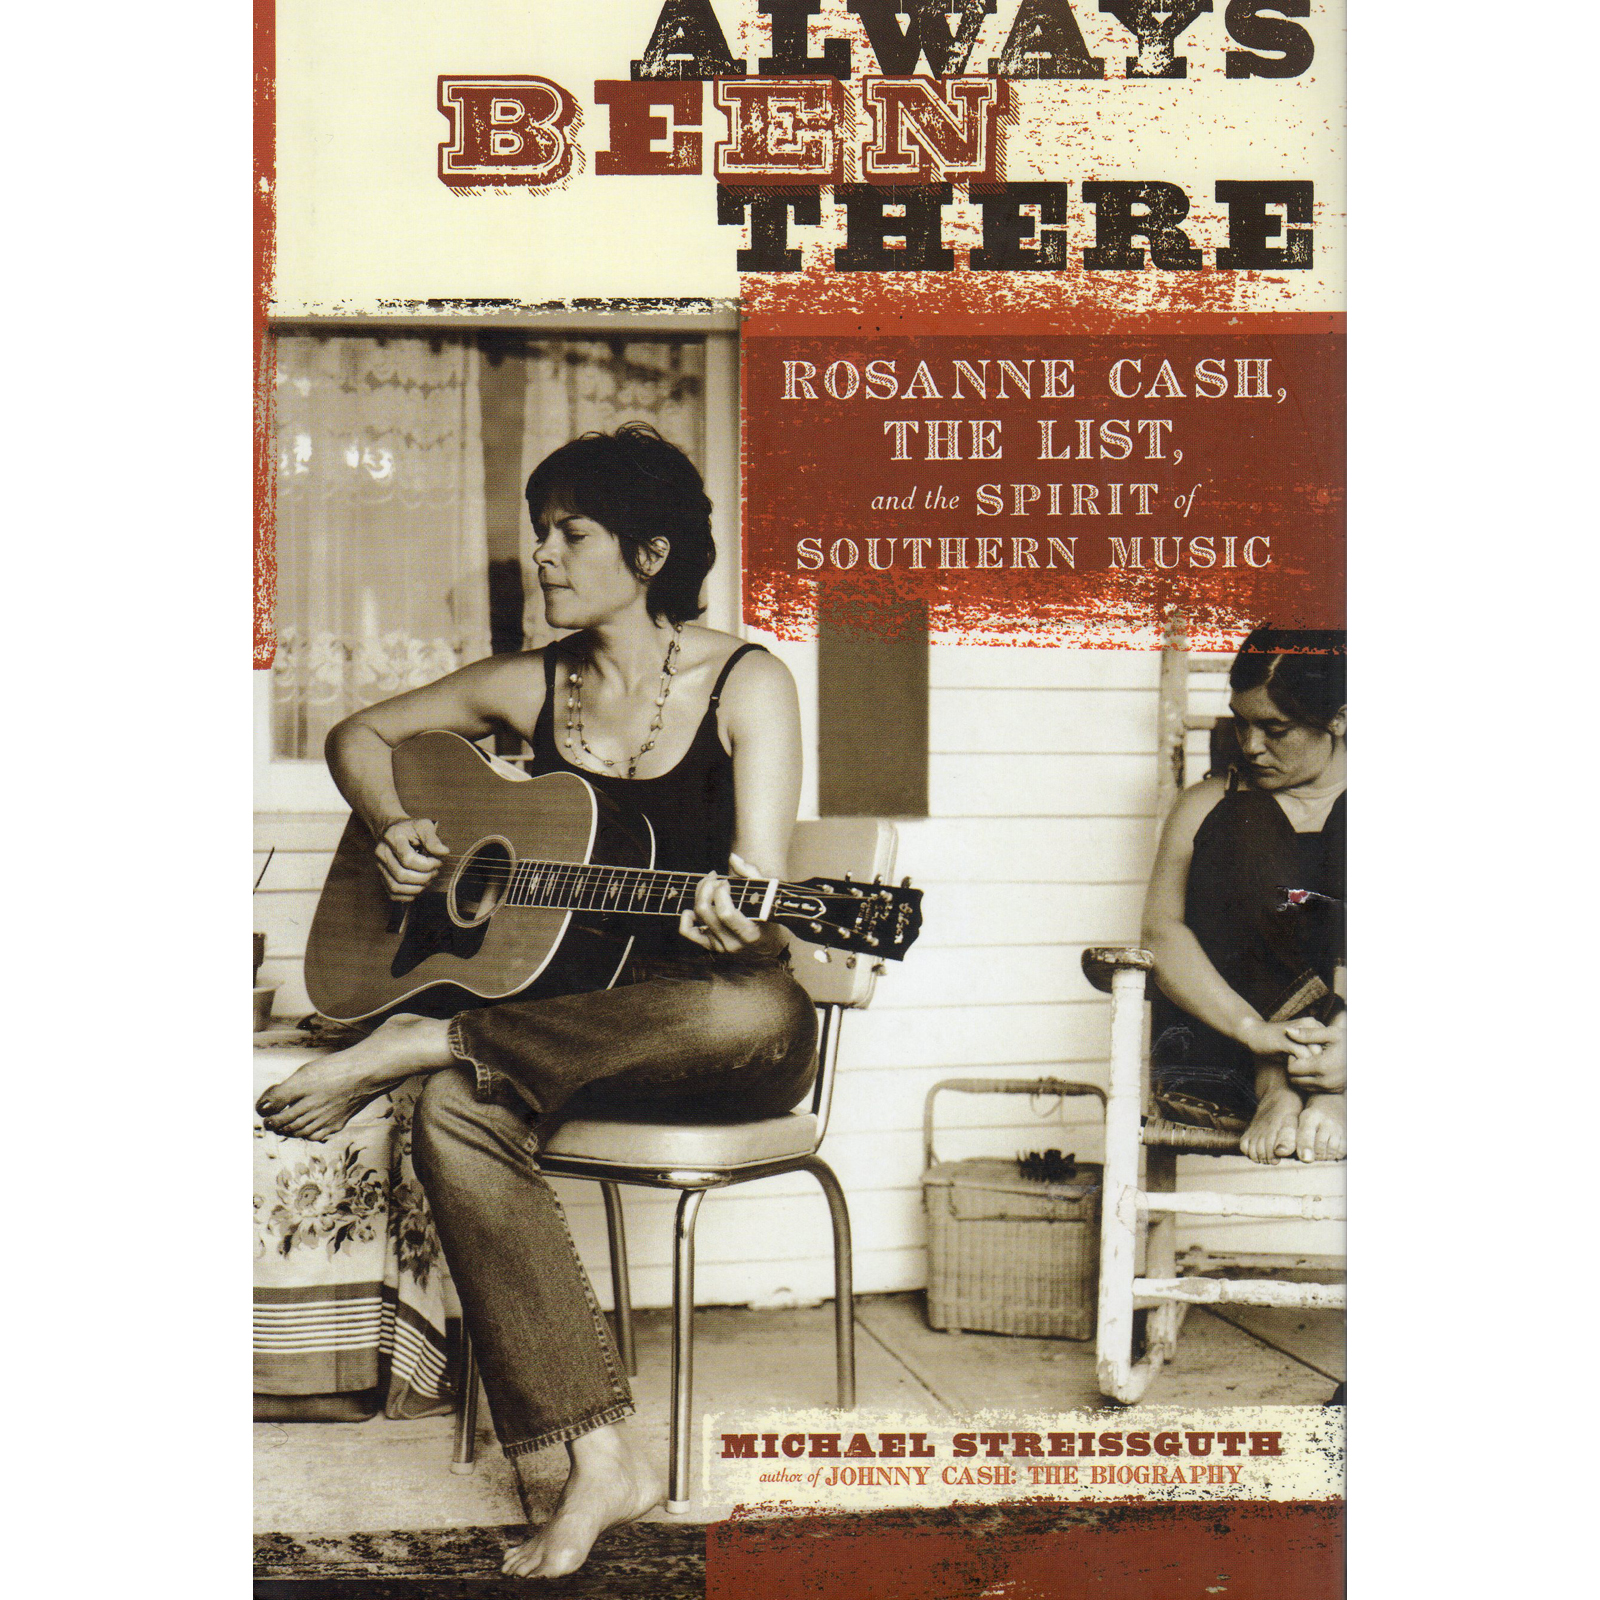 Rosanne Cash Always Been There Book Autographed Signed